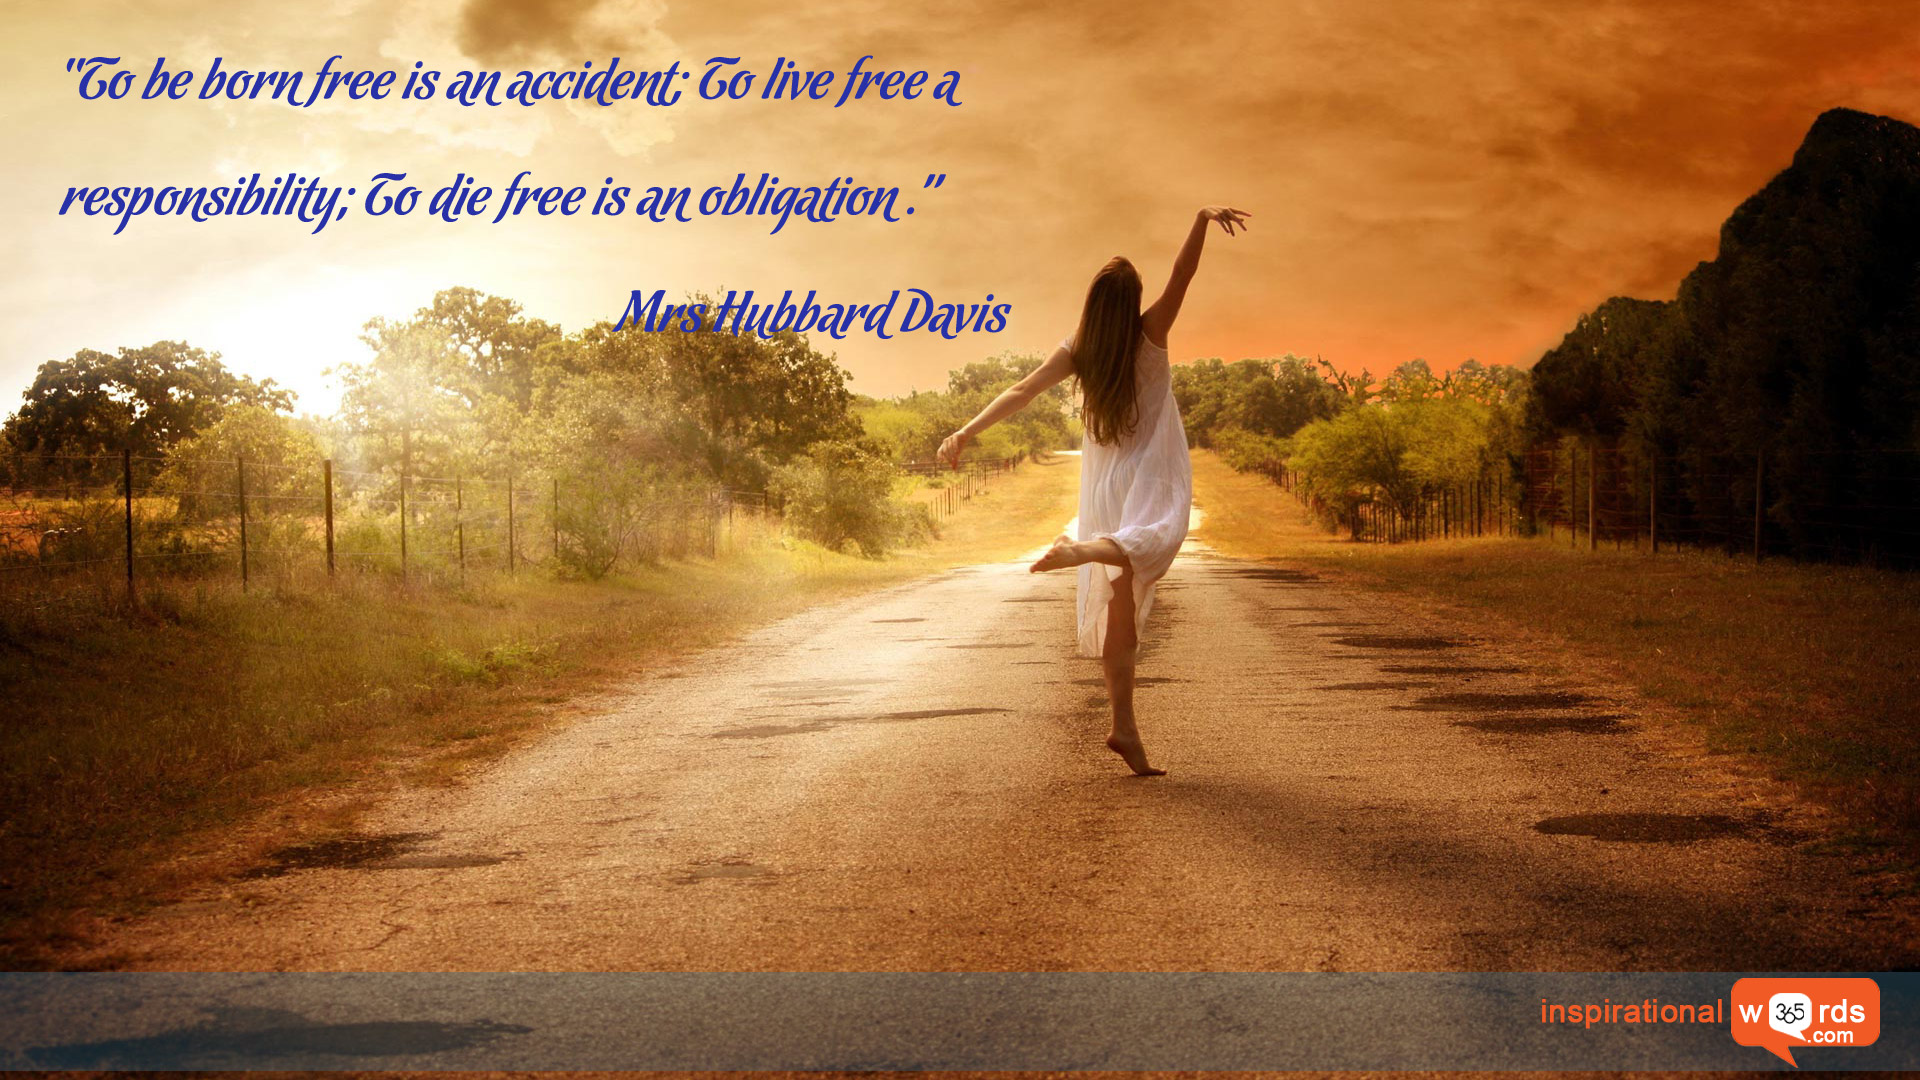 Inspirational Wallpaper Quote by Mrs Hubbard Davis